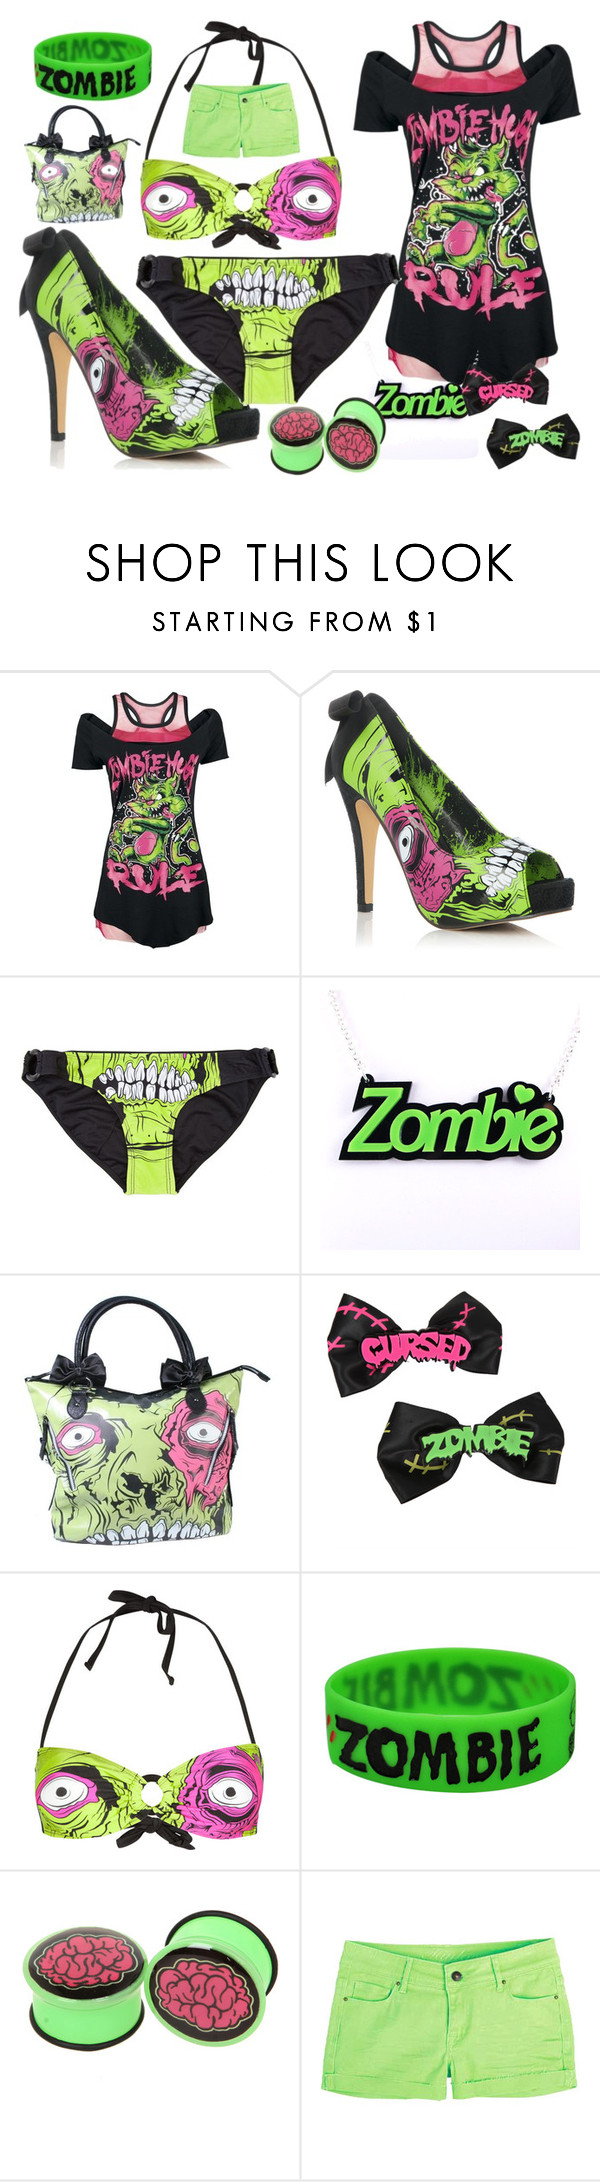 """""""ZOMBIE!"""" by sammy-elmo ❤ liked on Polyvore featuring JustFab, Iron Fist and Goodie Two Sleeves"""